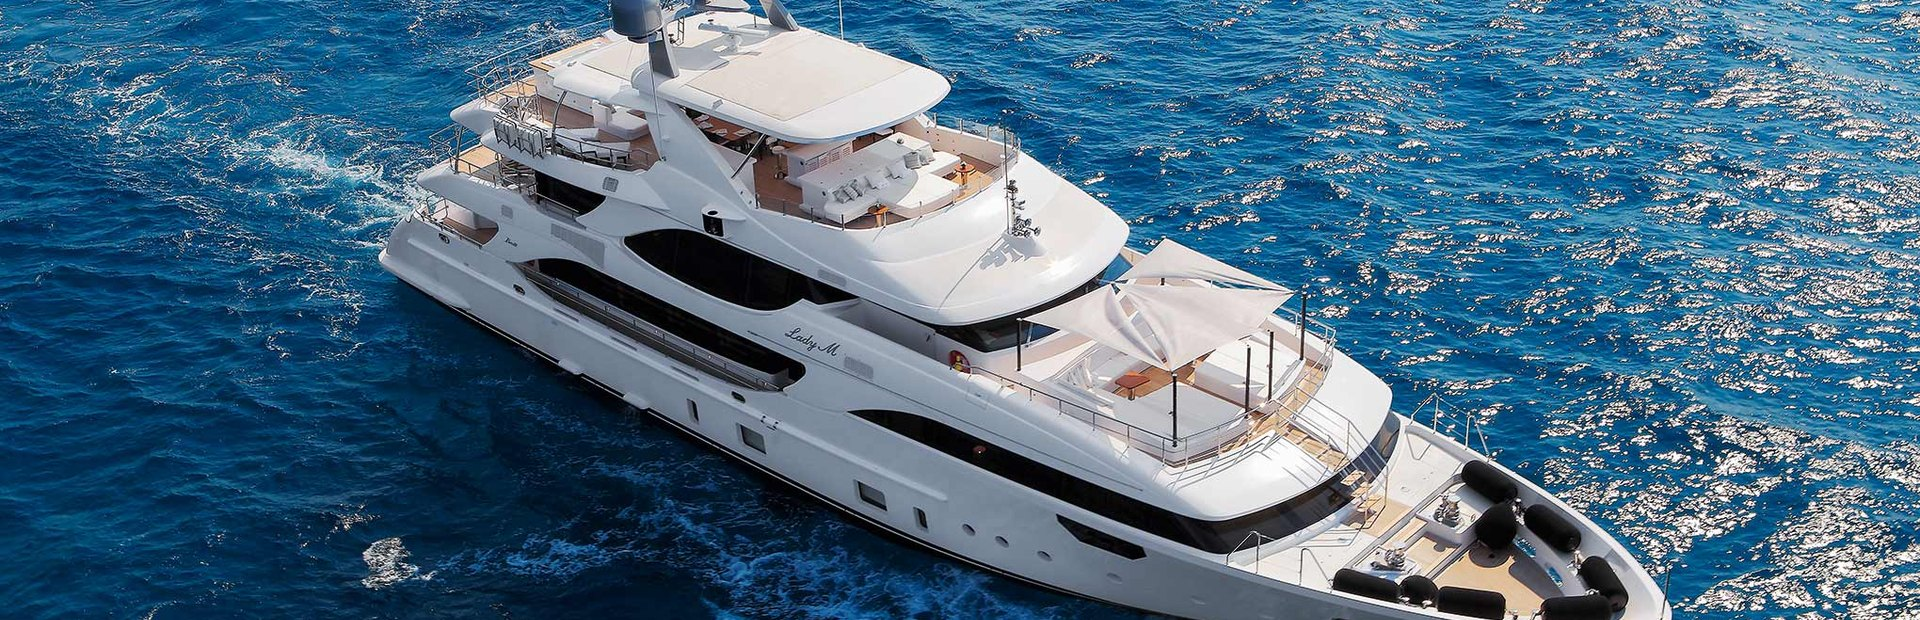 Crystal 140' Yacht Charter